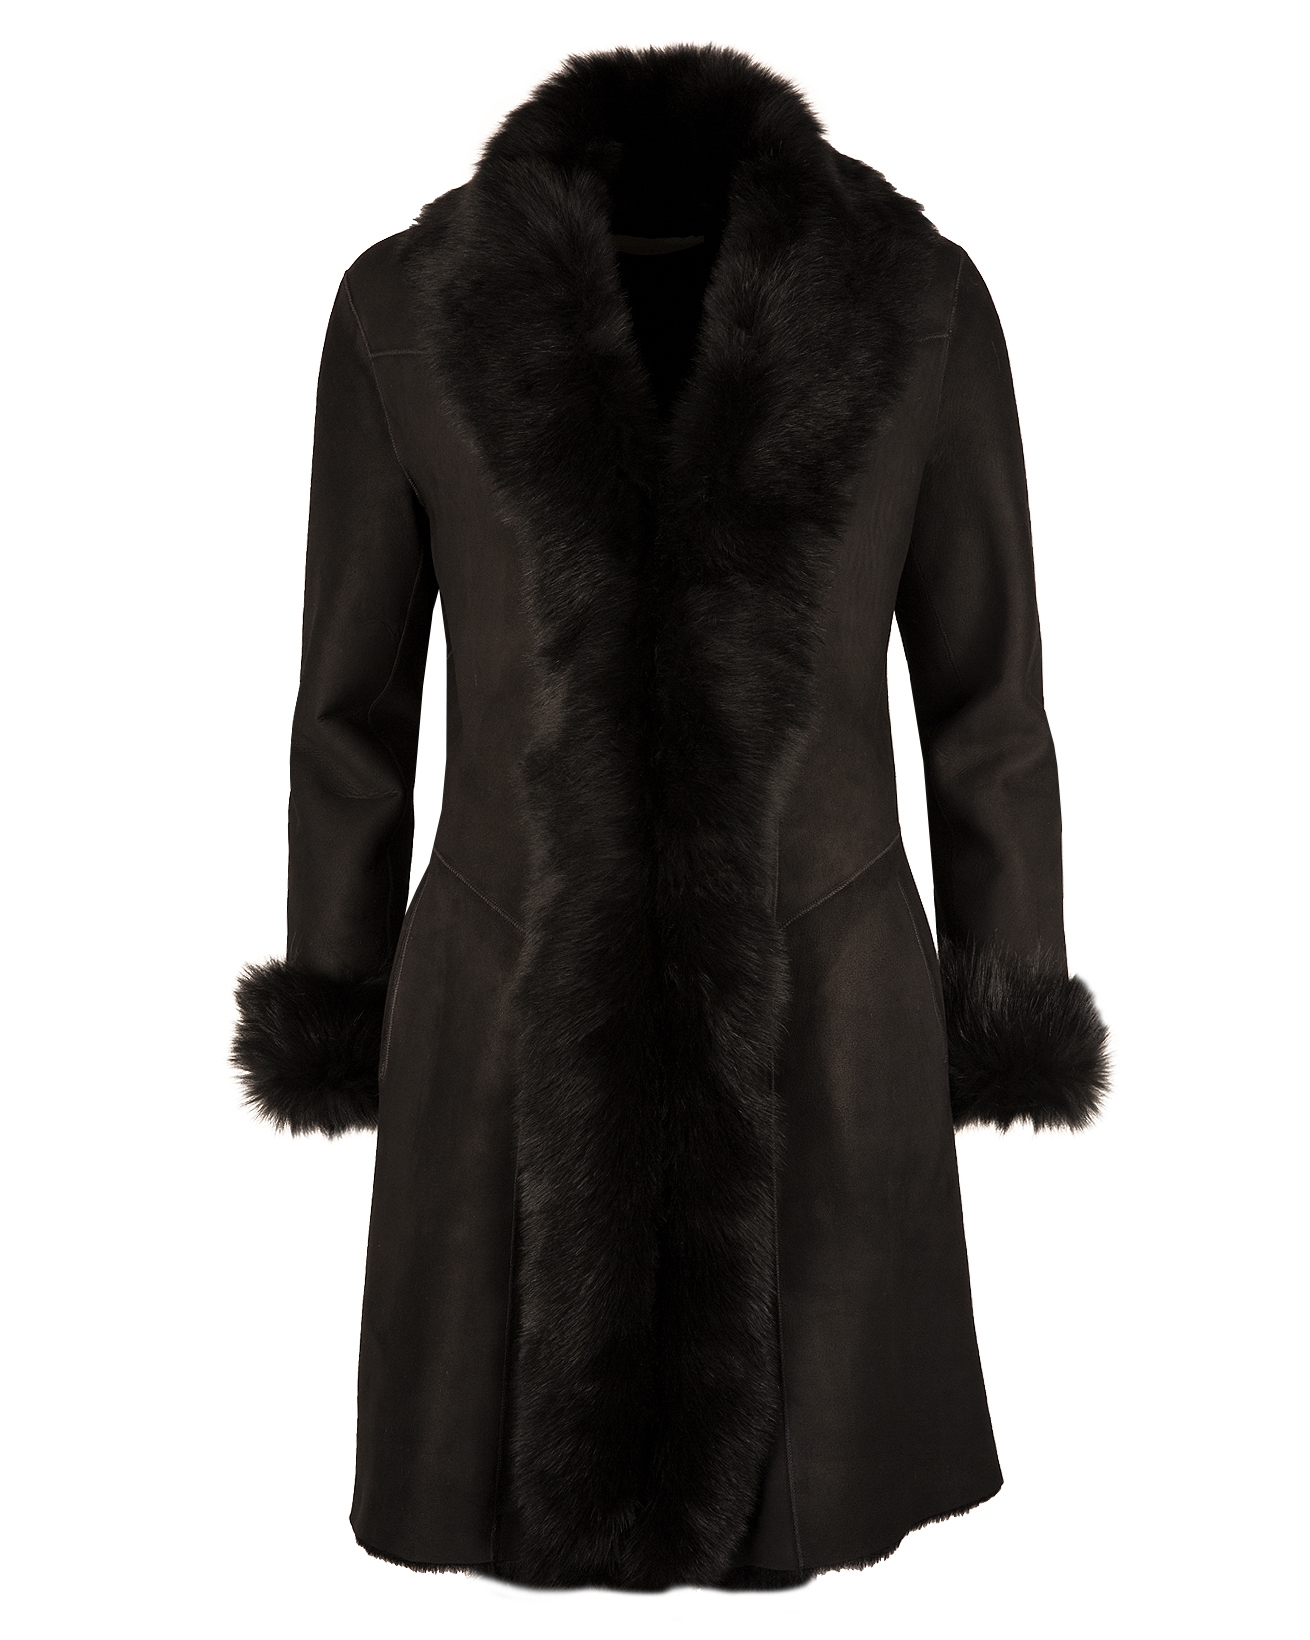 3/4 Toscana Trim Coat - Size 10 - Black - 1208